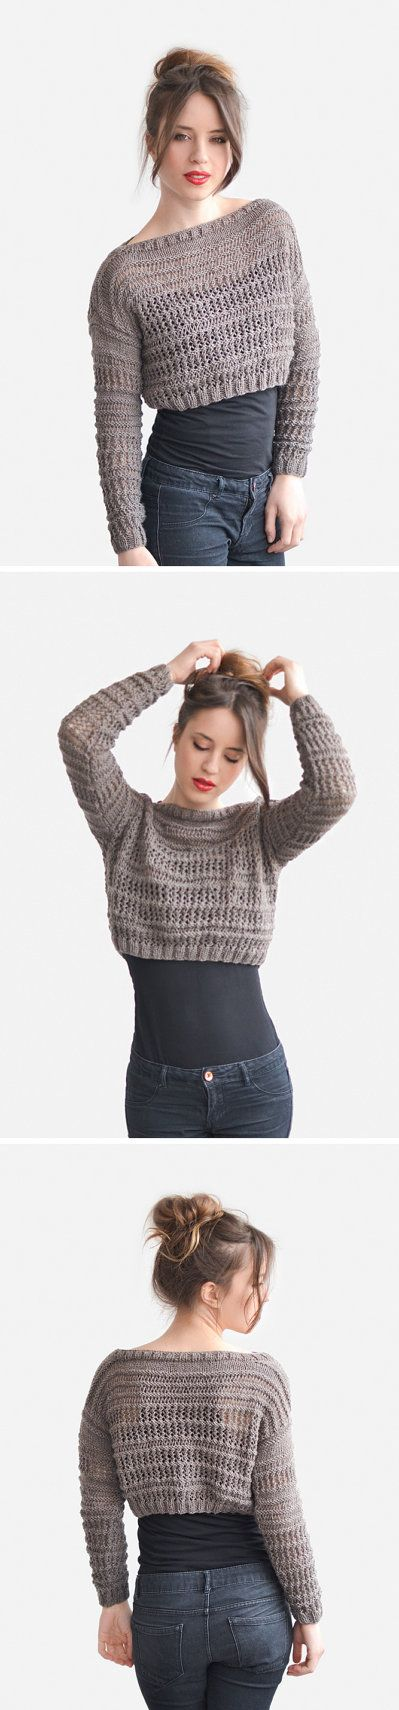 Crop Top Sweater in Light Brown Hand Knit Short Top by Plexida